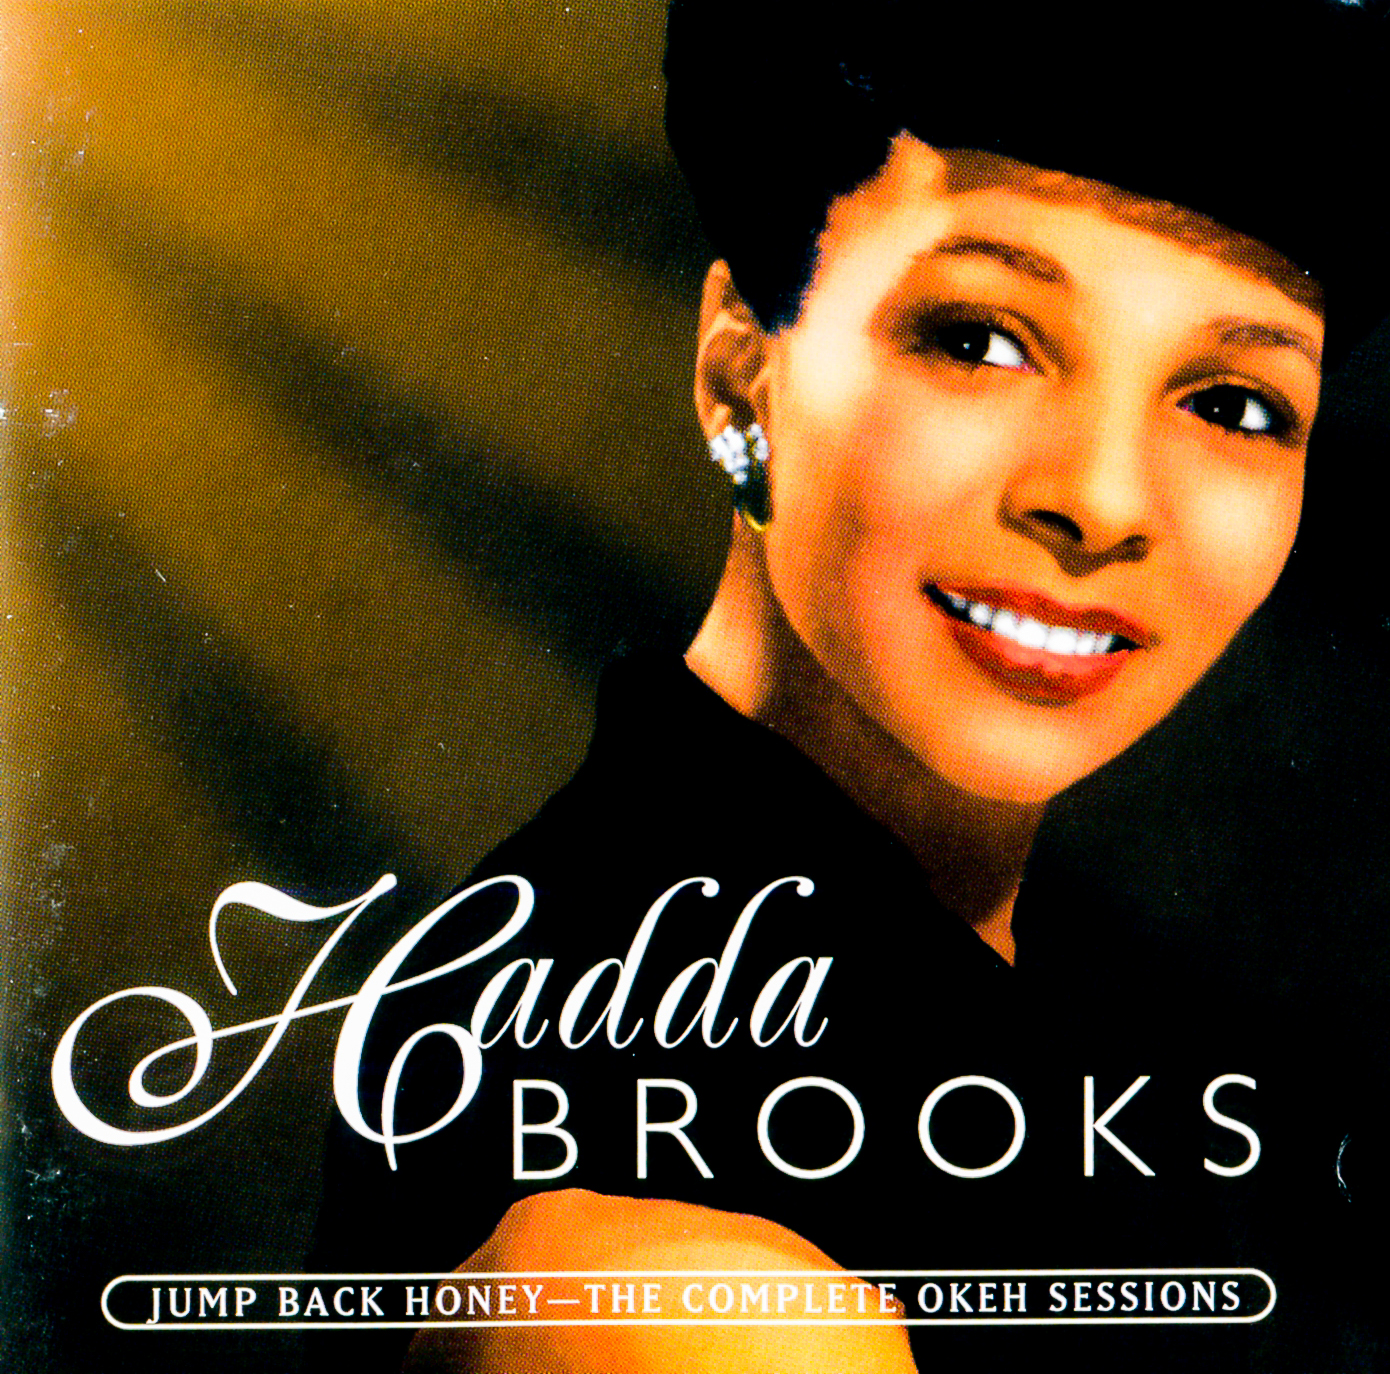 Art for Remember by Hadda Brooks